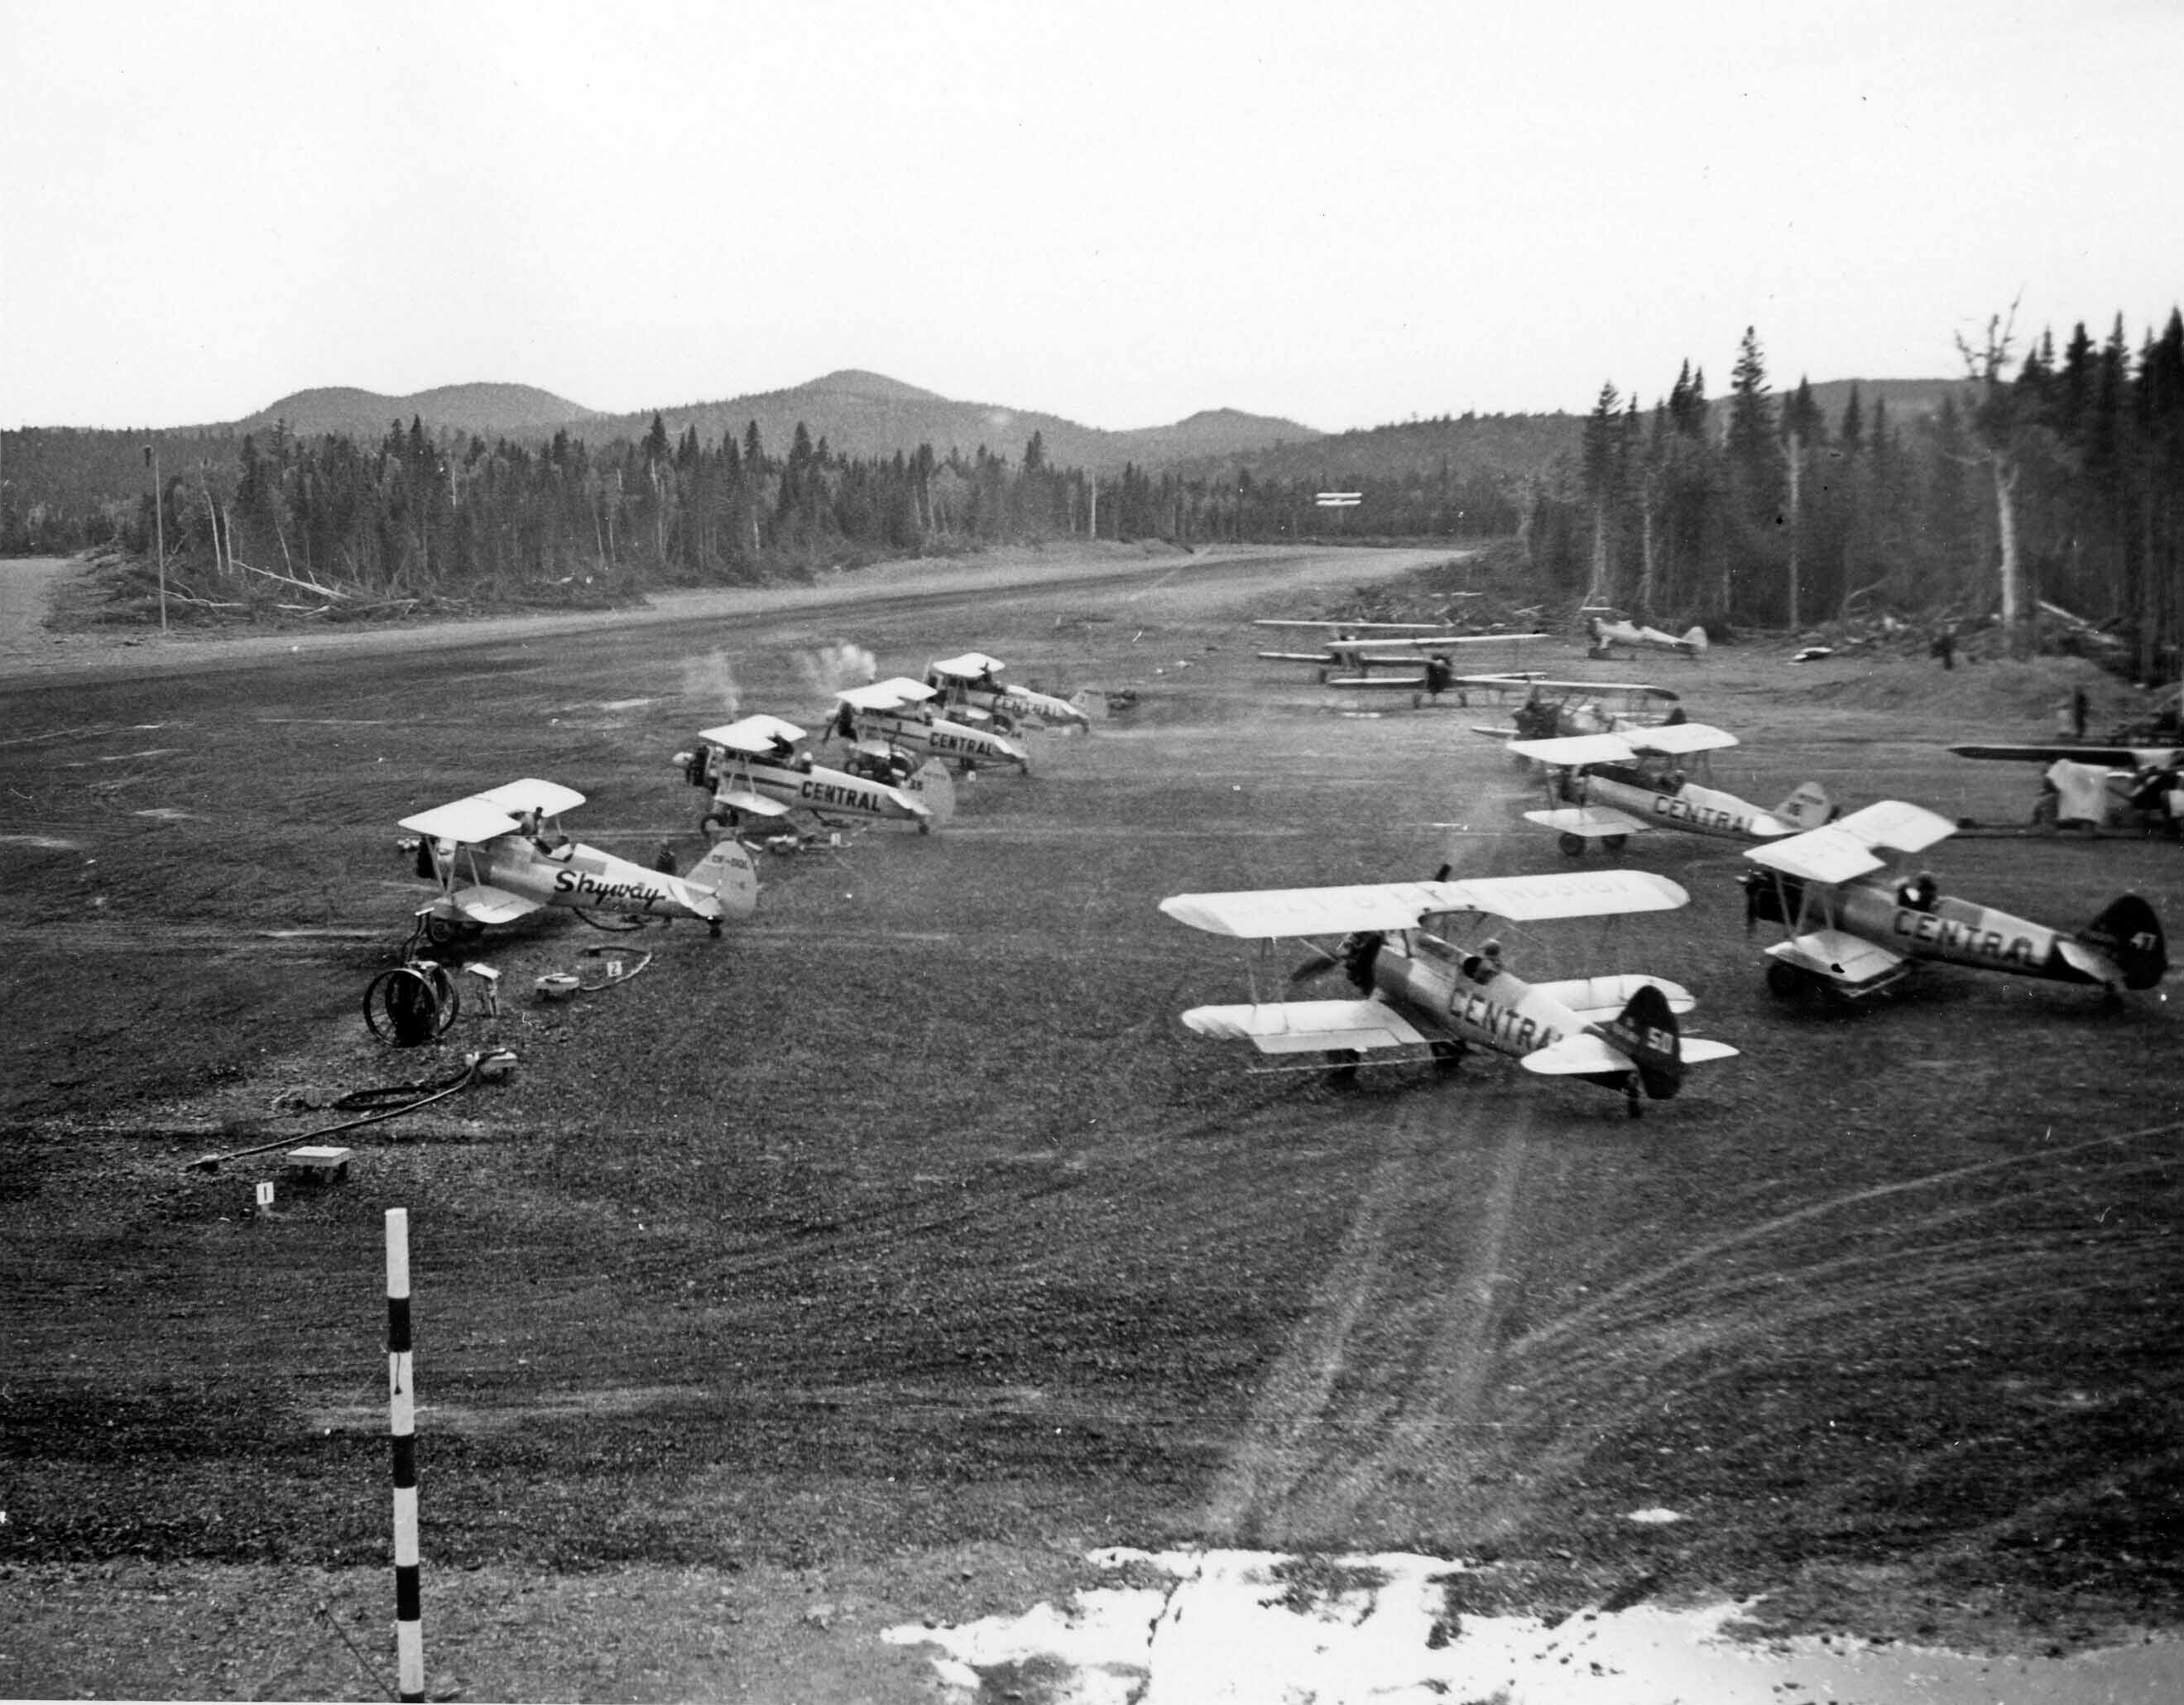 Stearmans parked at Budworm City, NB, in the 1950s